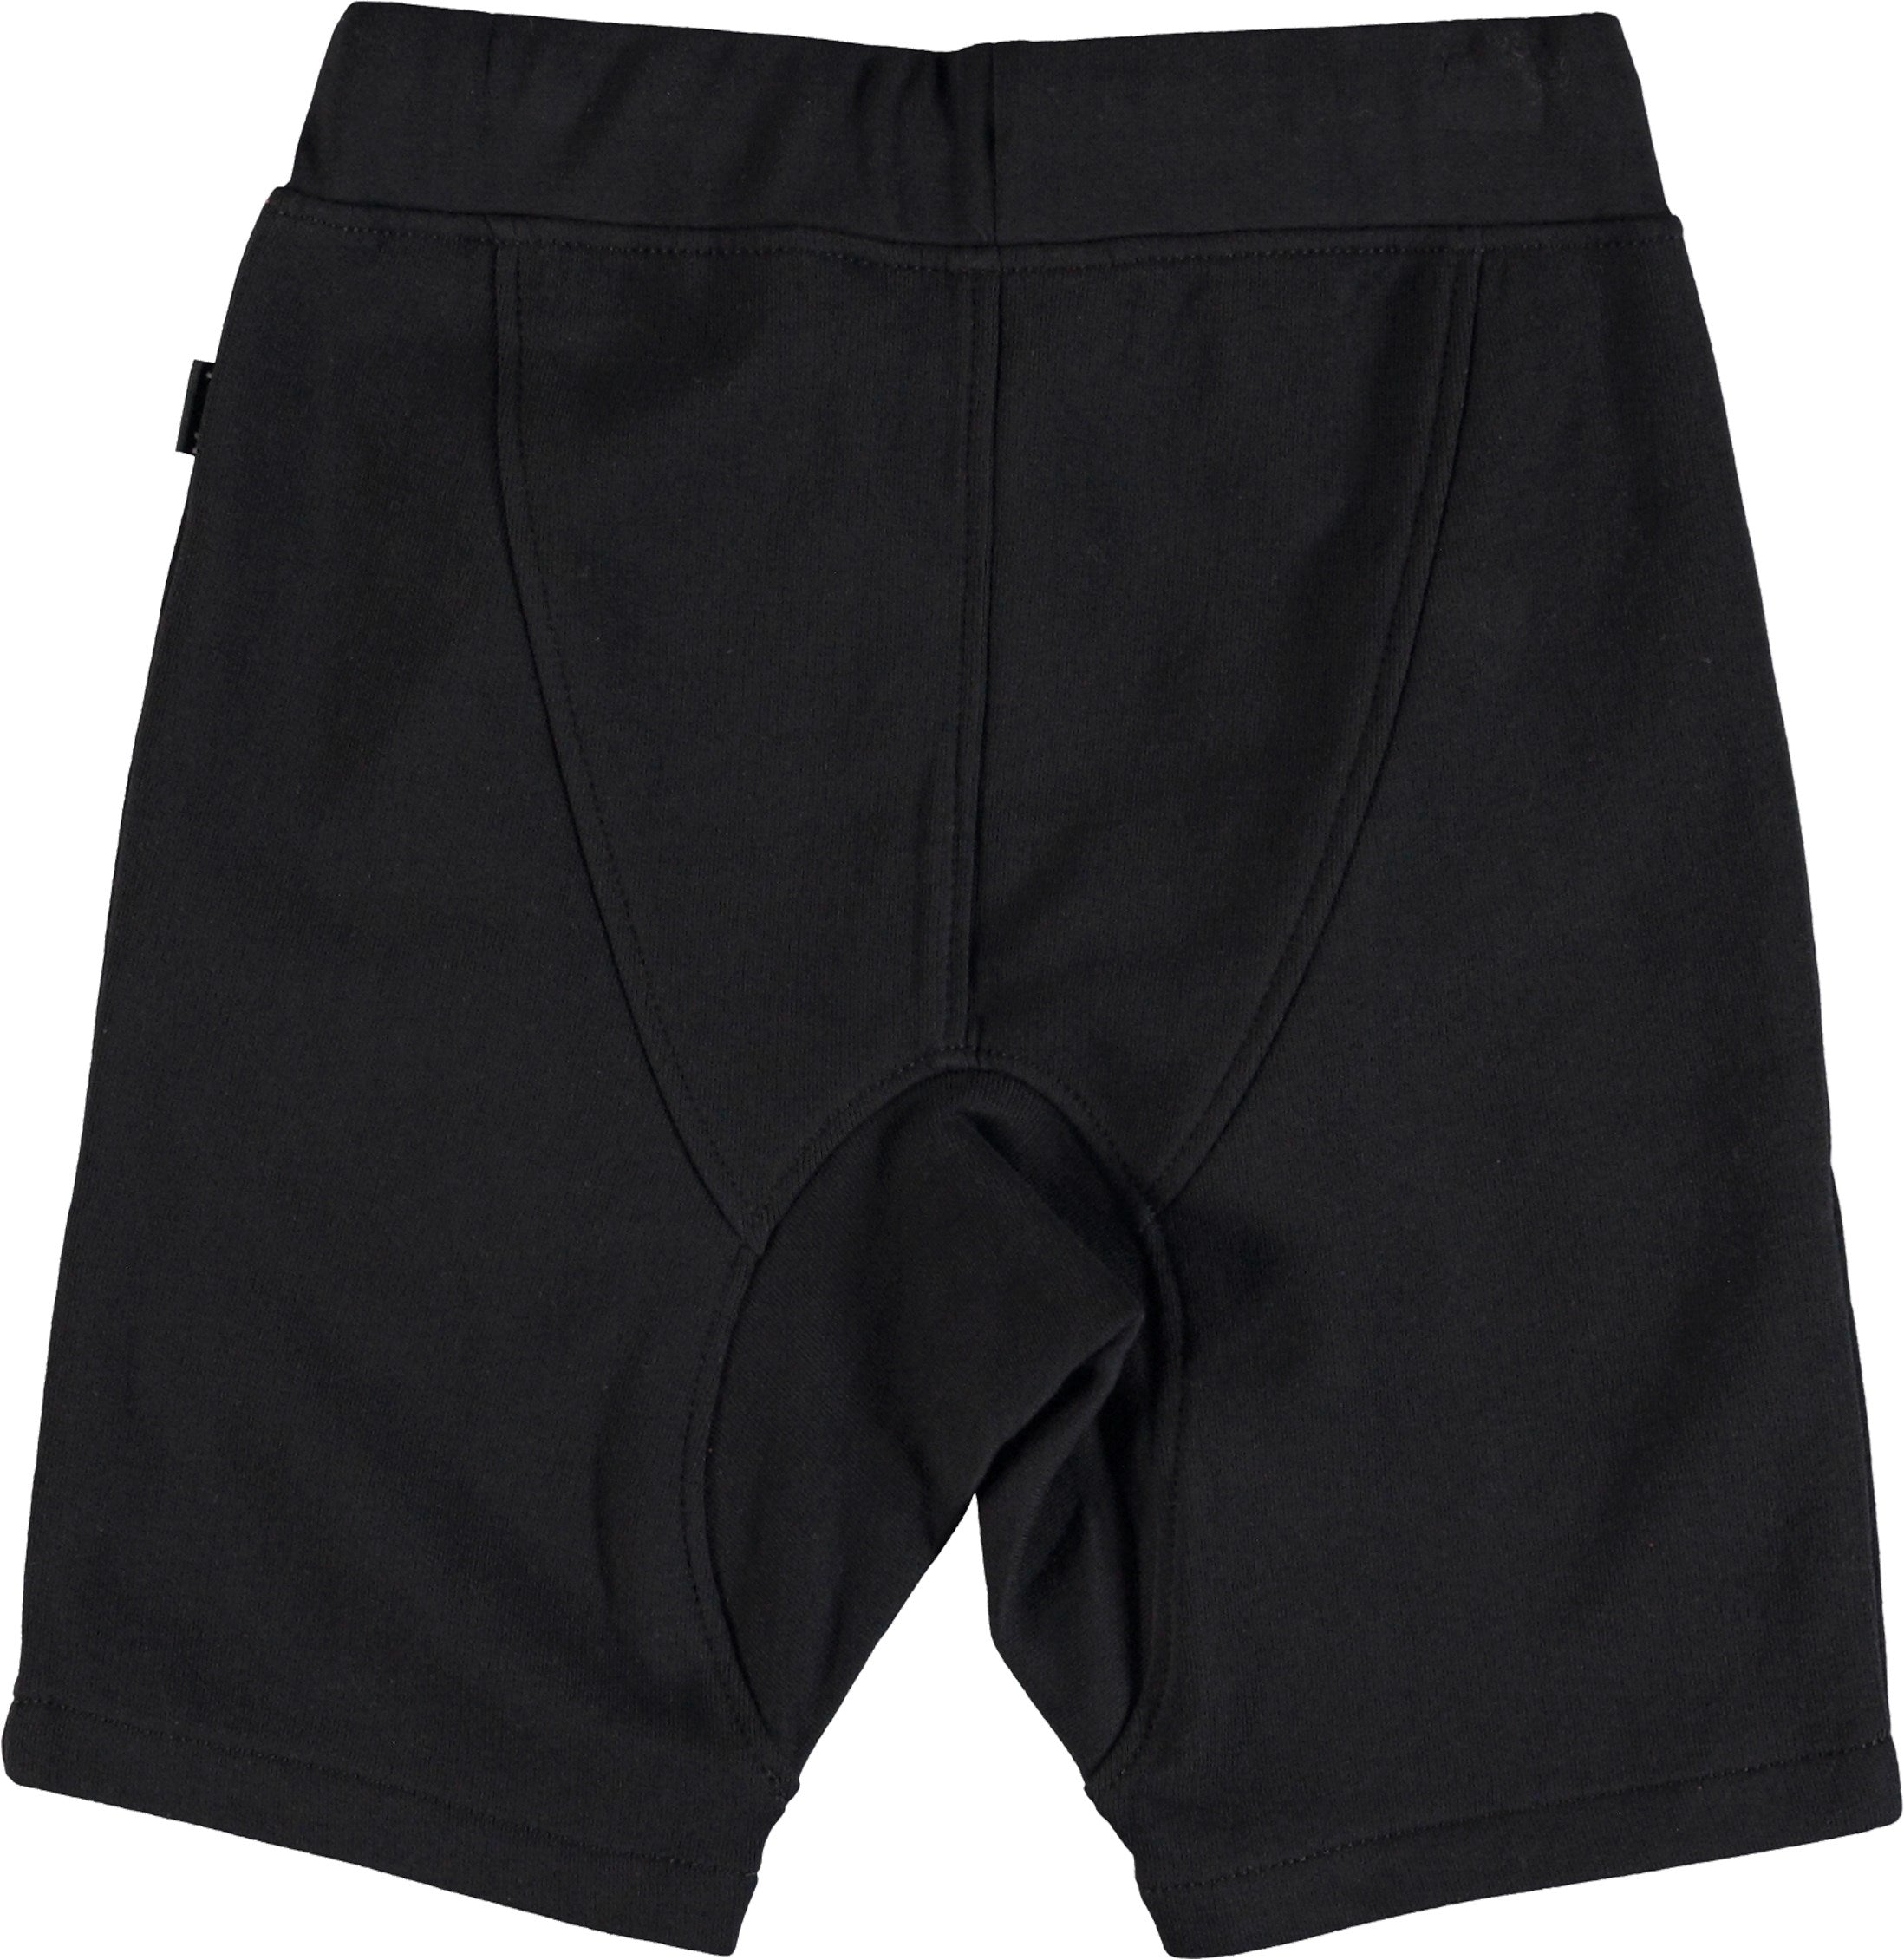 Designer Kids Fashion at Bloom Moda Online Children's Boutique - Molo Ashtonshort,  Shorts